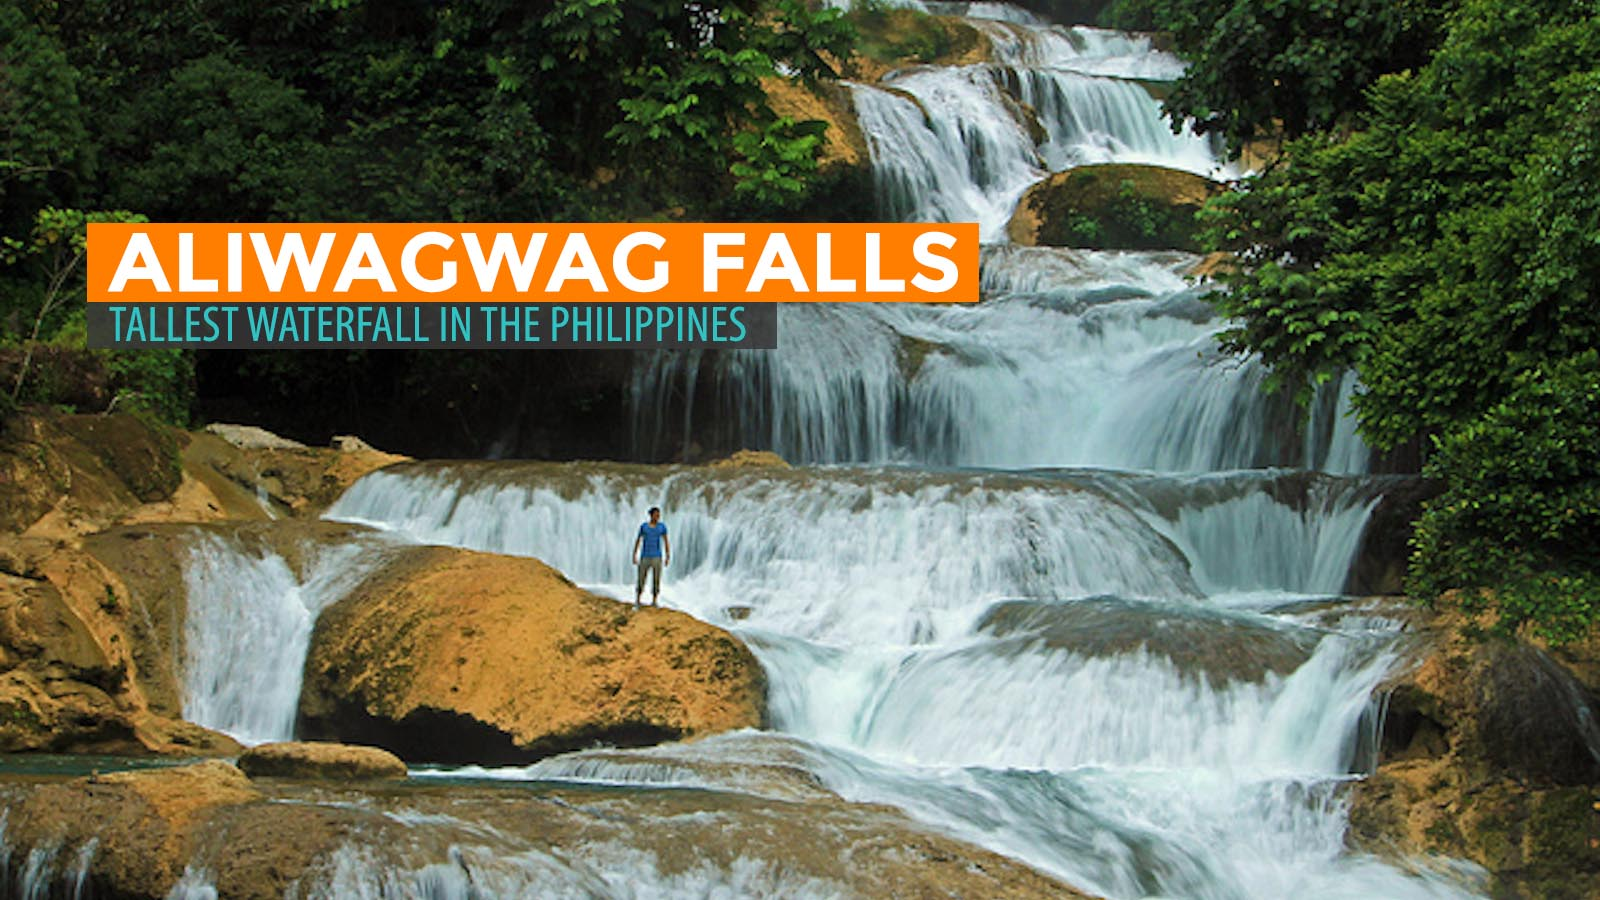 Aliwagwag Falls The Tallest Waterfall In The Philippines